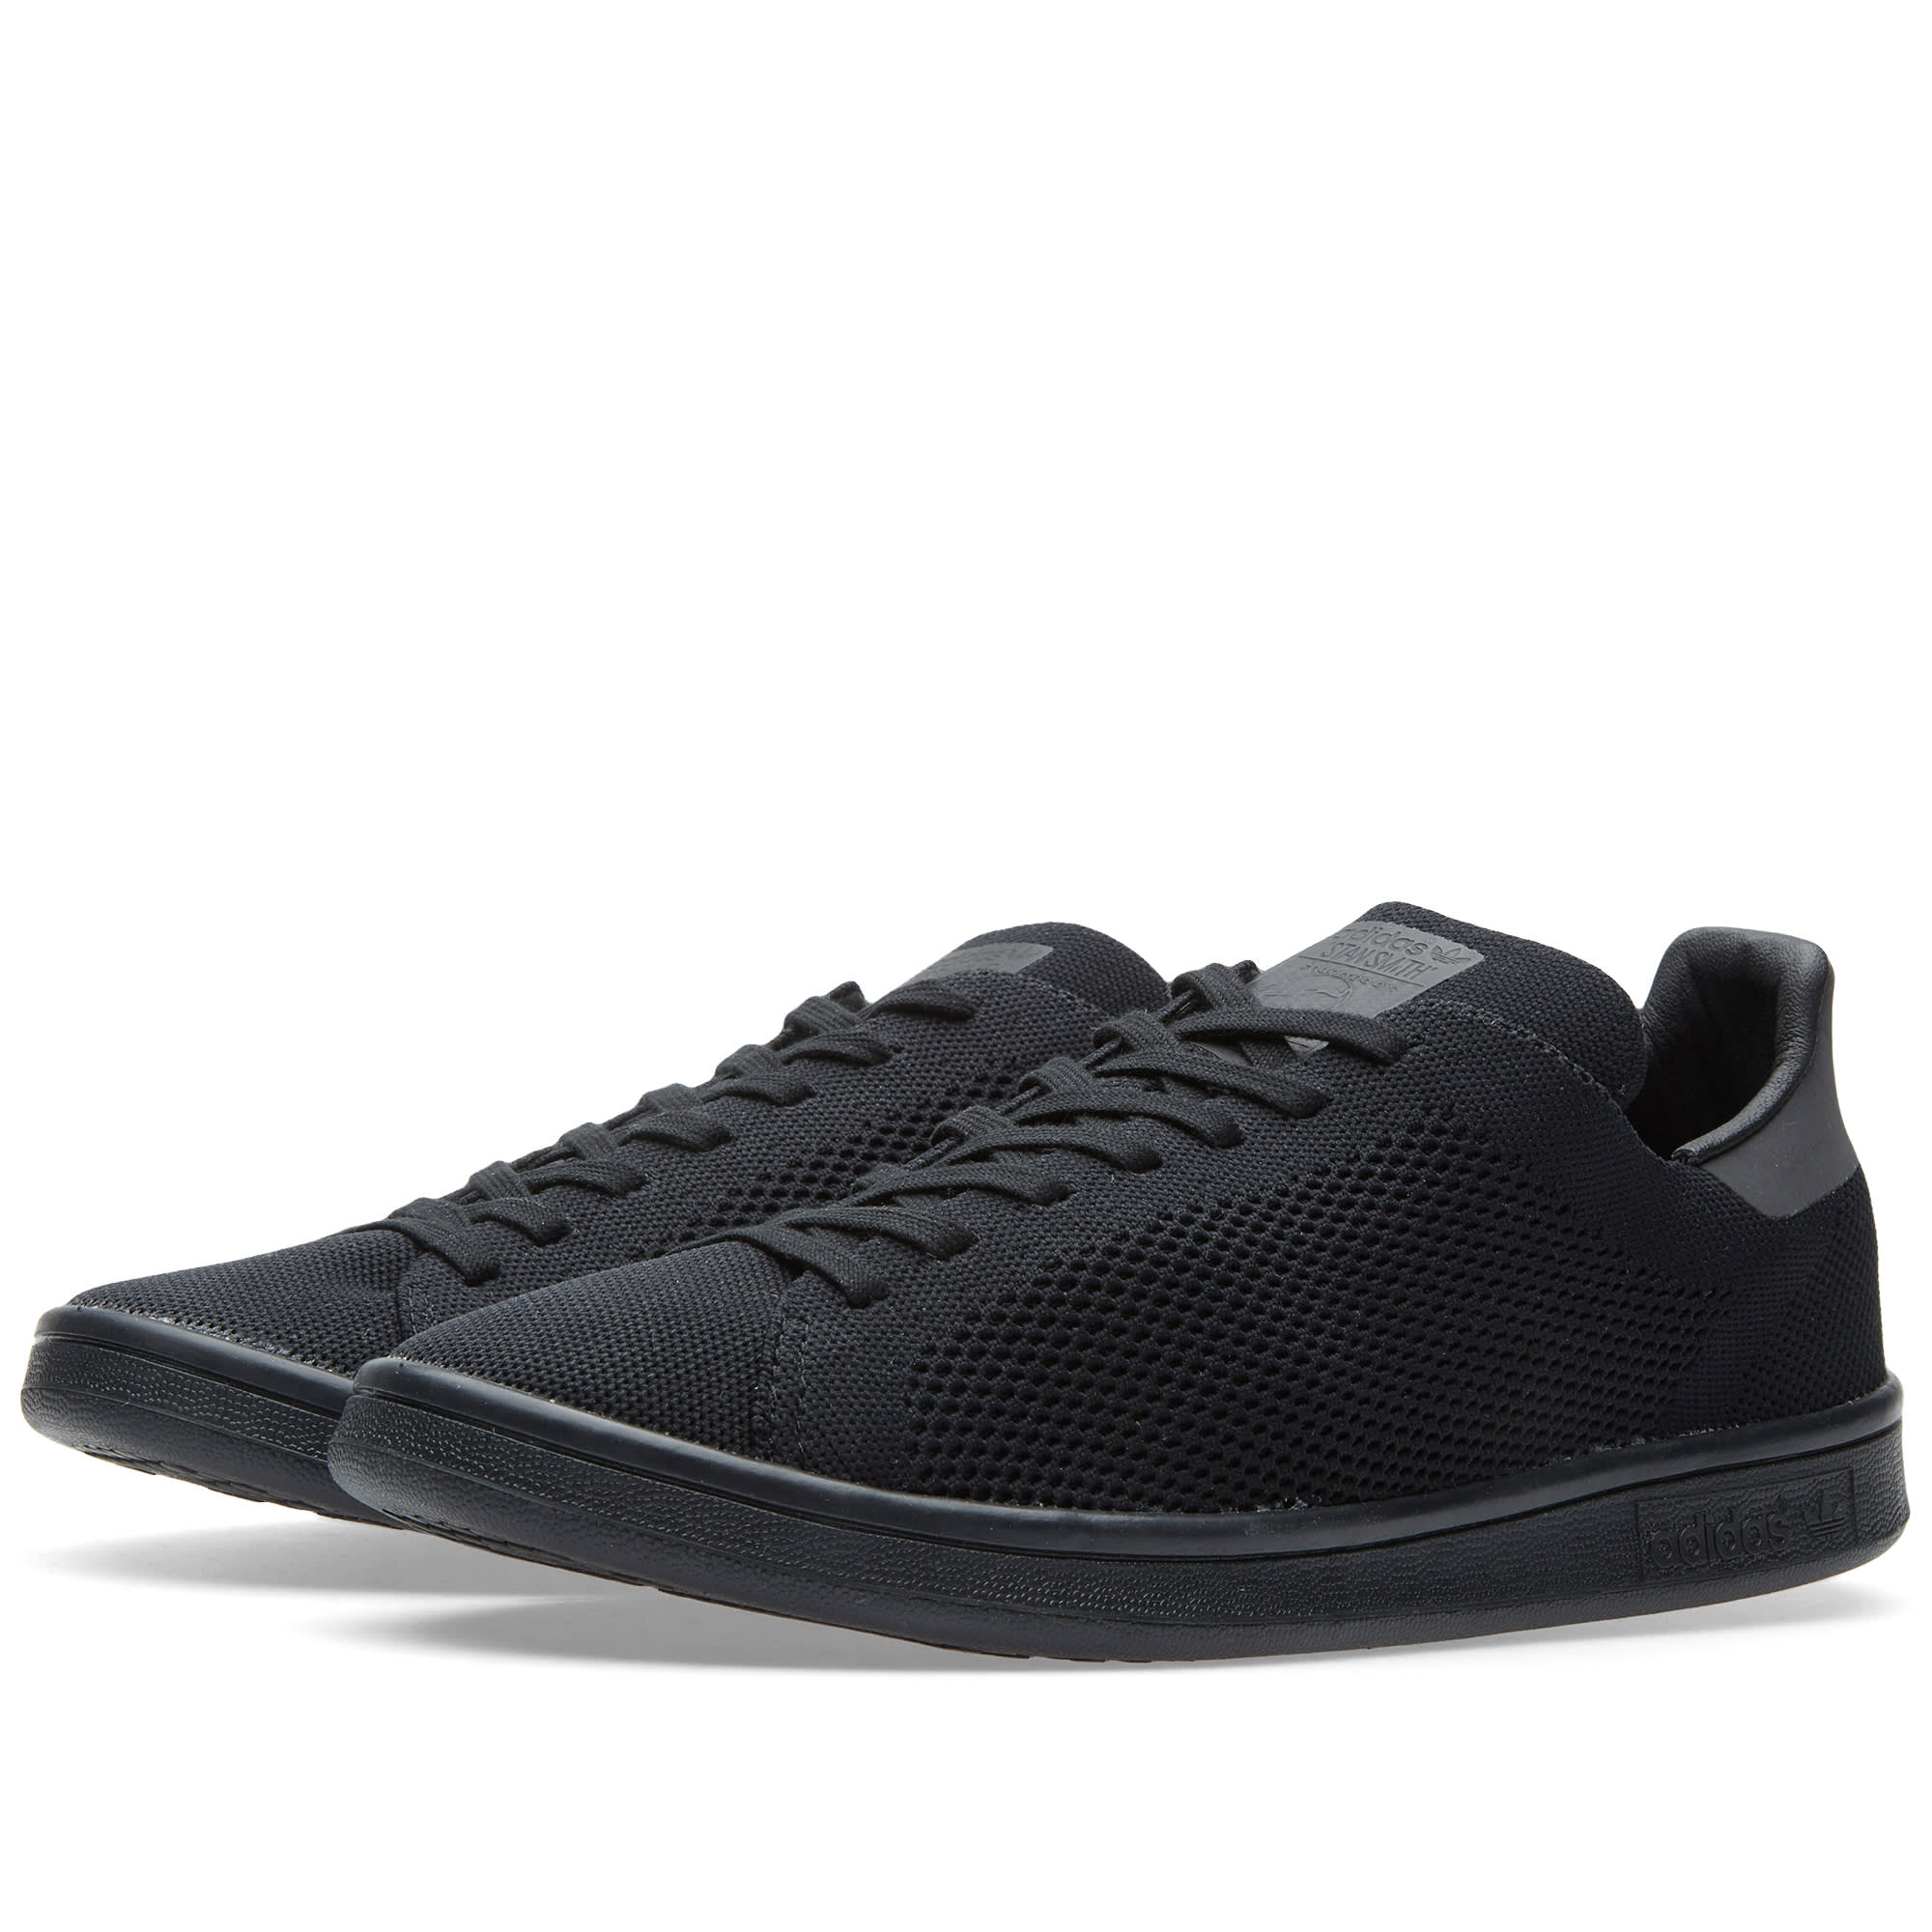 huge discount 7e1d3 0c80b Adidas Stan Smith Primeknit